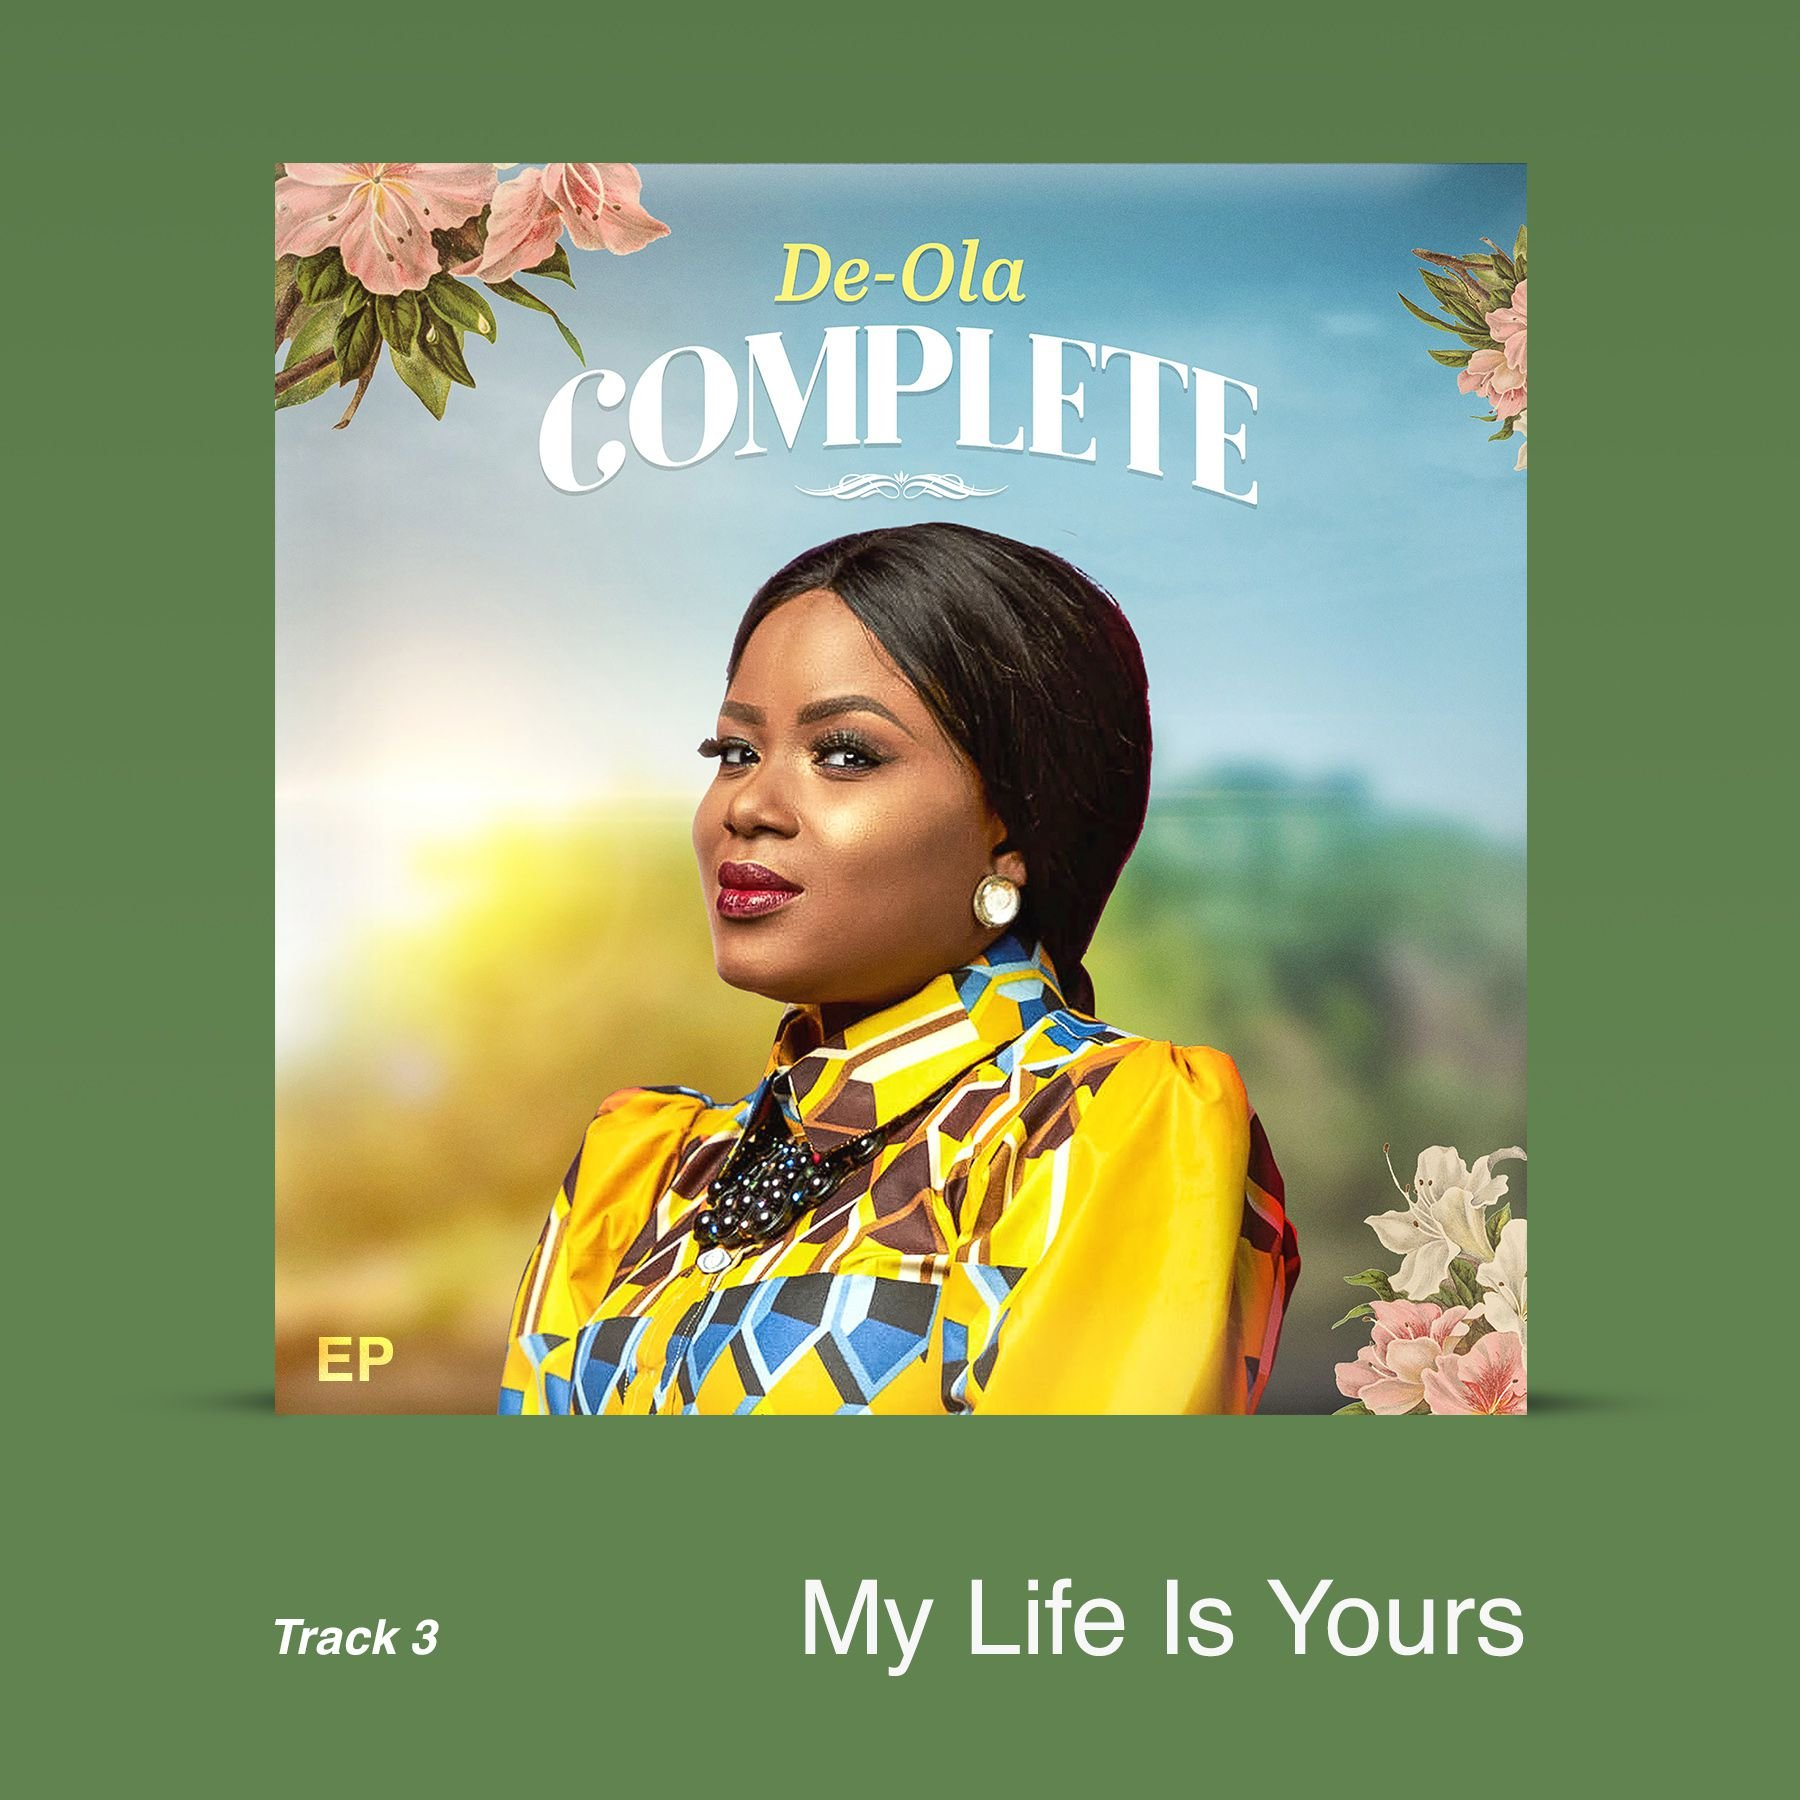 """De-Ola Releases New Single """"My Life Is Yours"""" Off Her Ep titled """"Complete"""""""